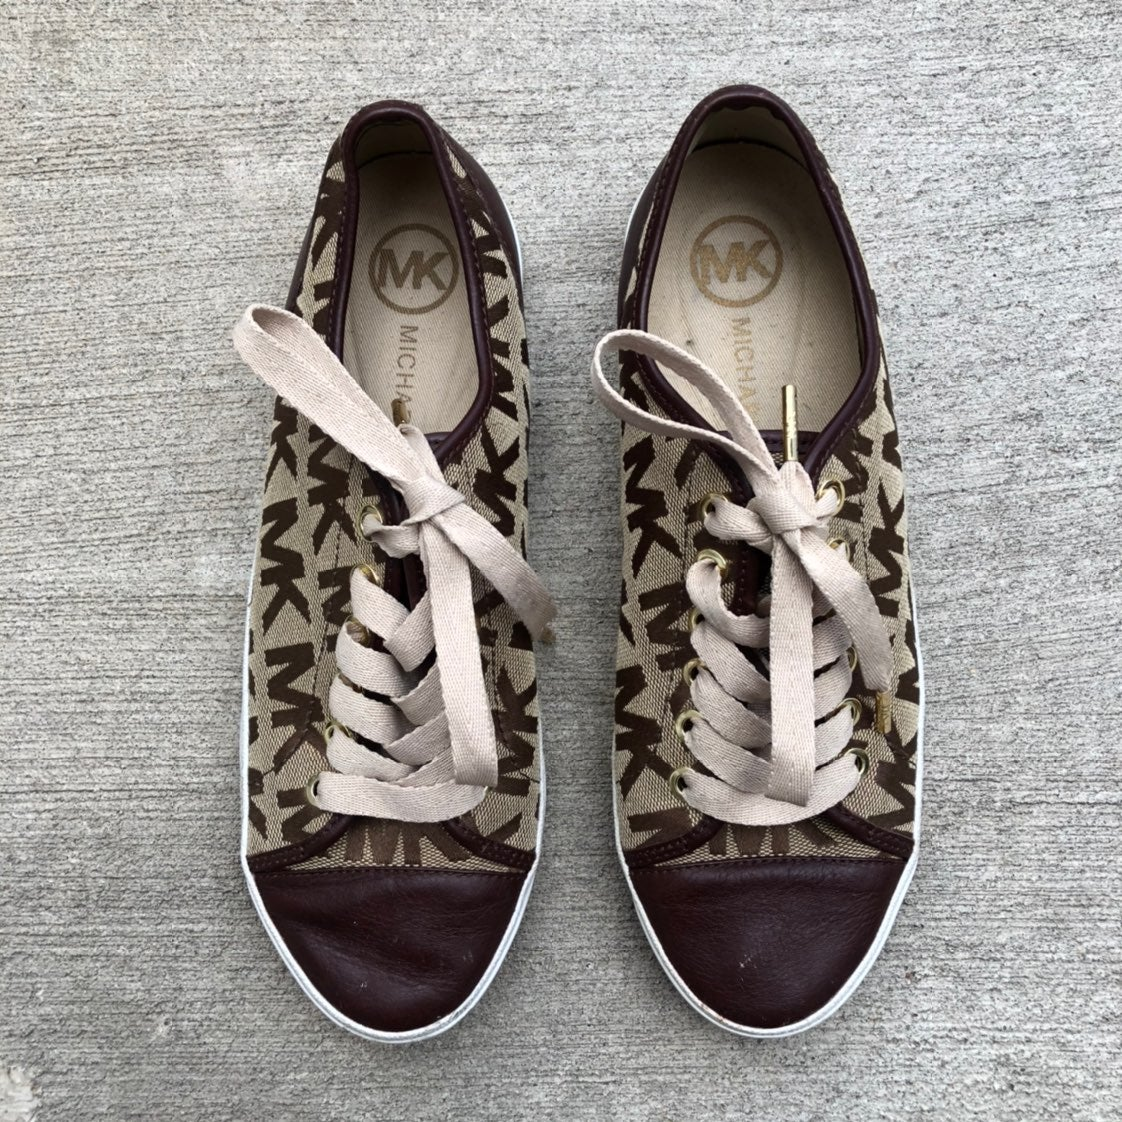 Michael Kors Leather & Canvas Sneakers